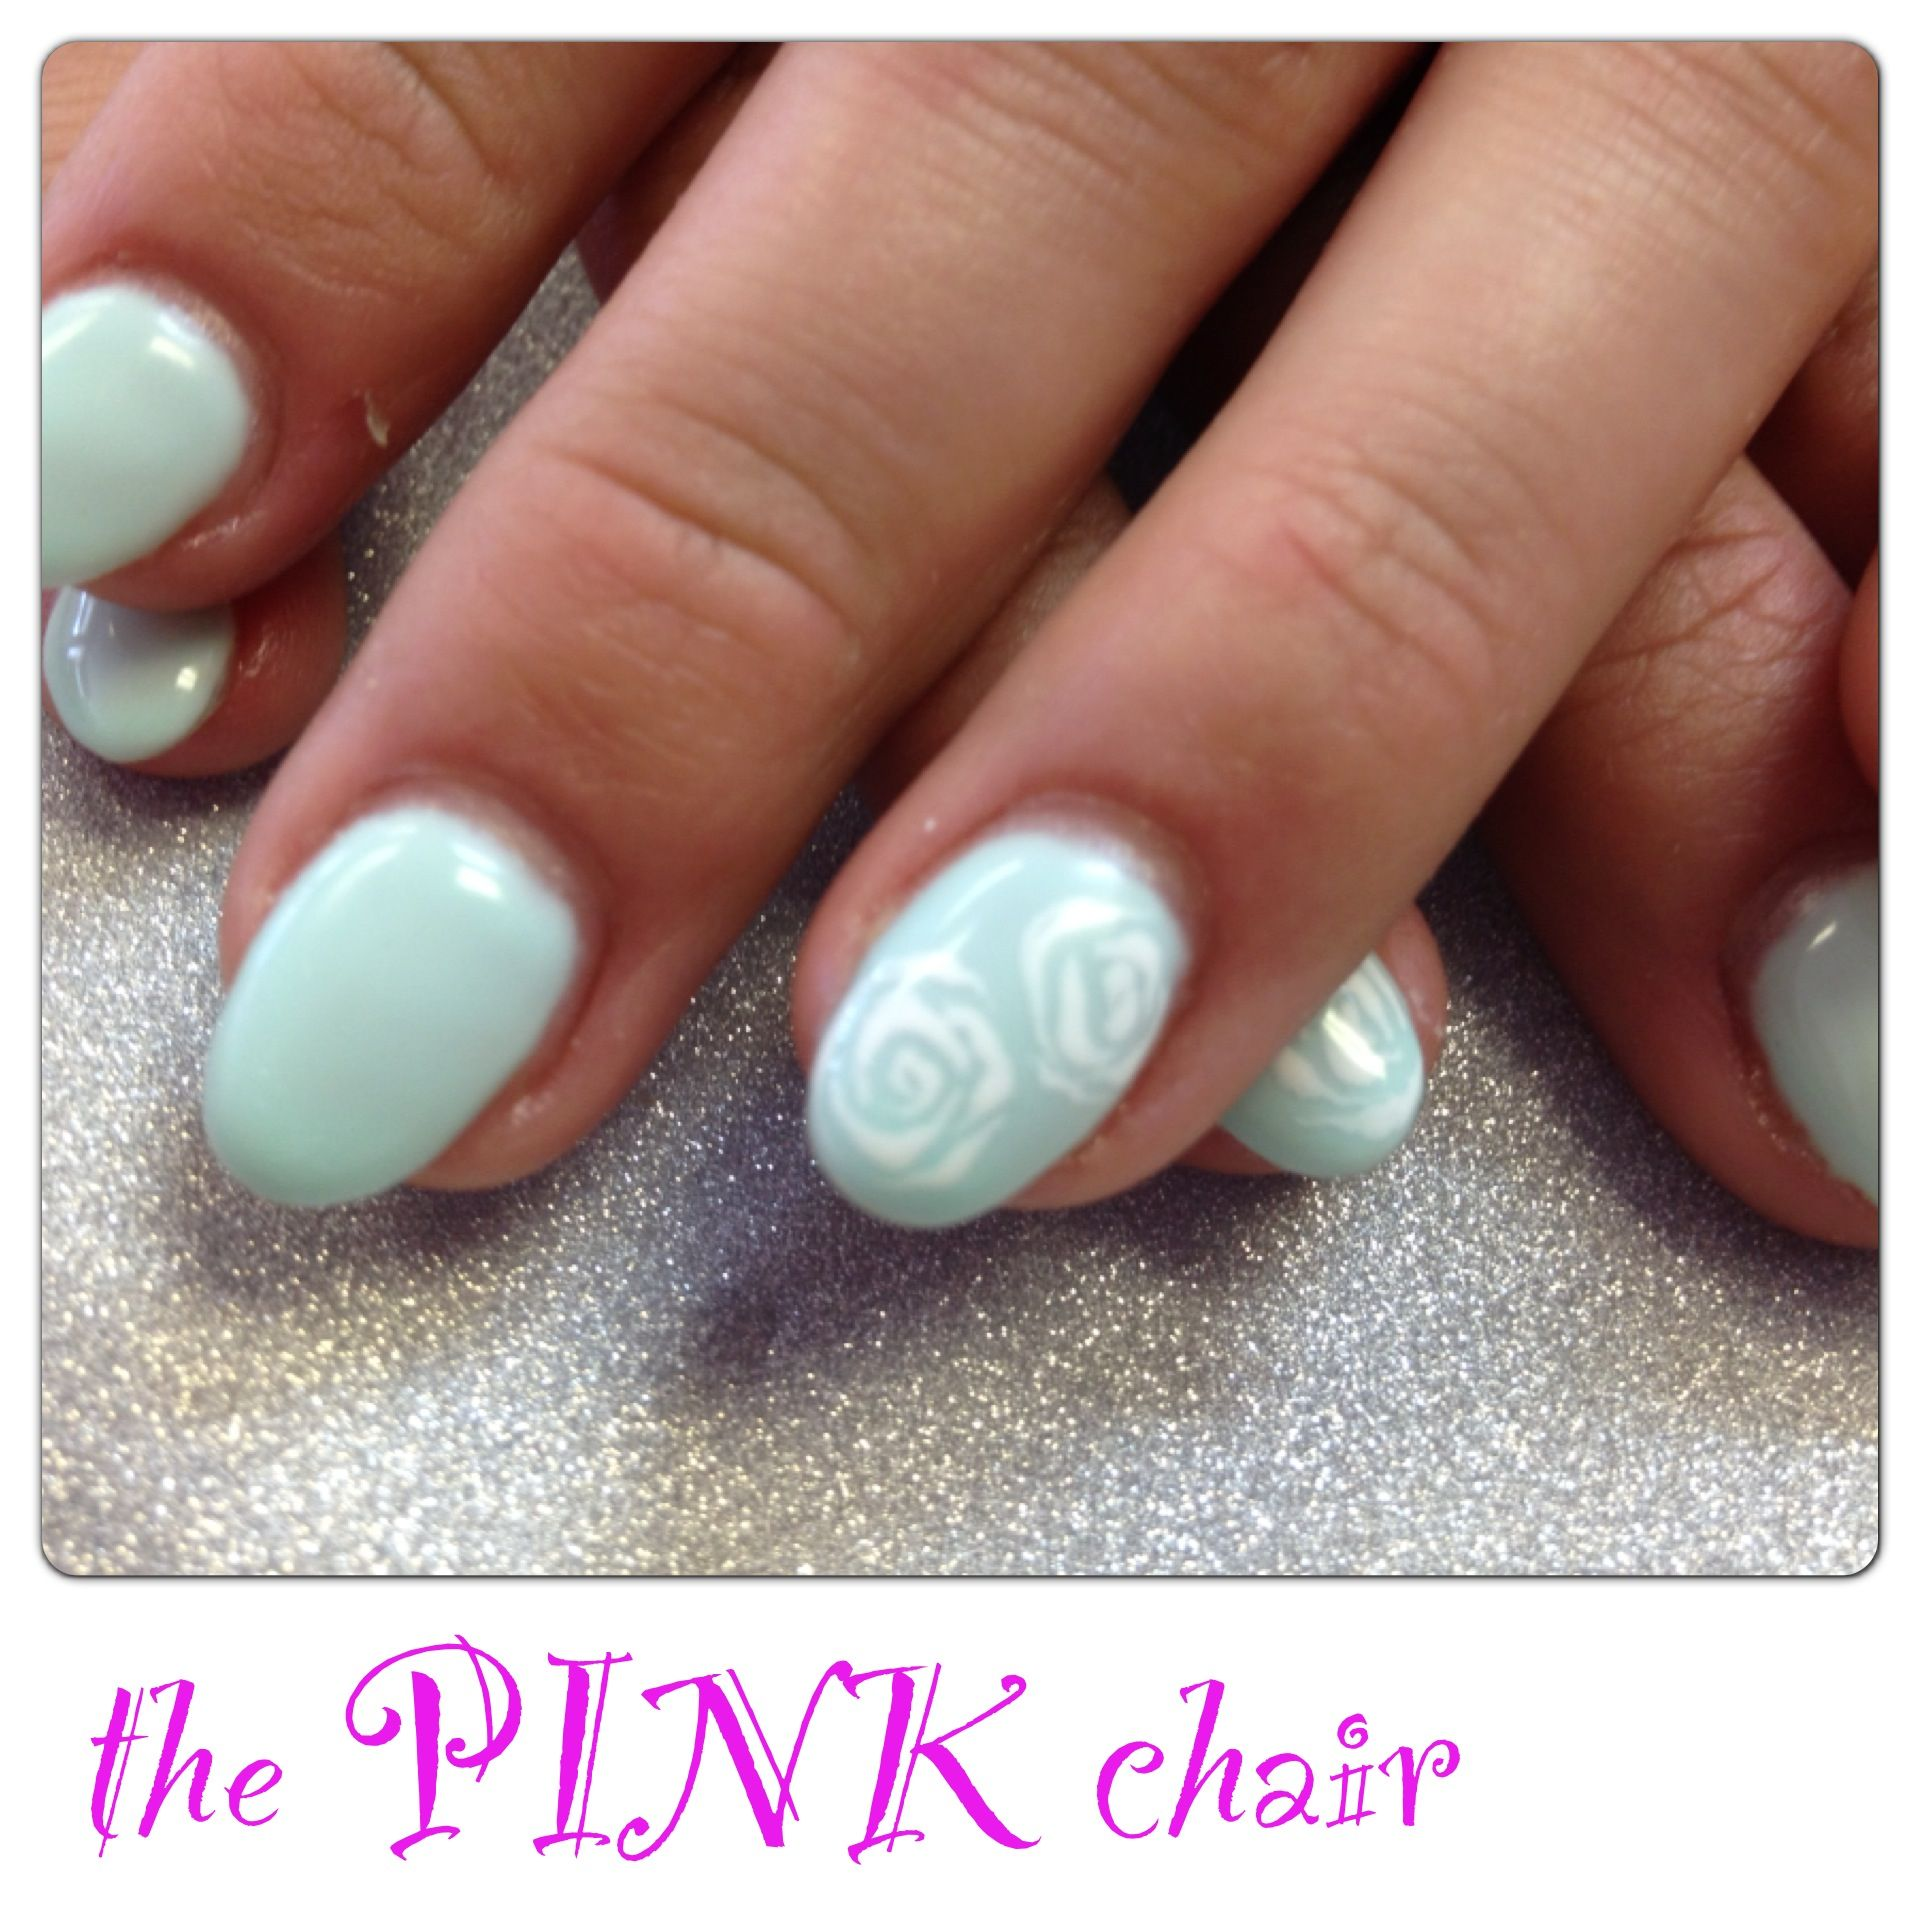 Morning Swim Colouredgel gel by Light Elegance. Hand painted roses ...